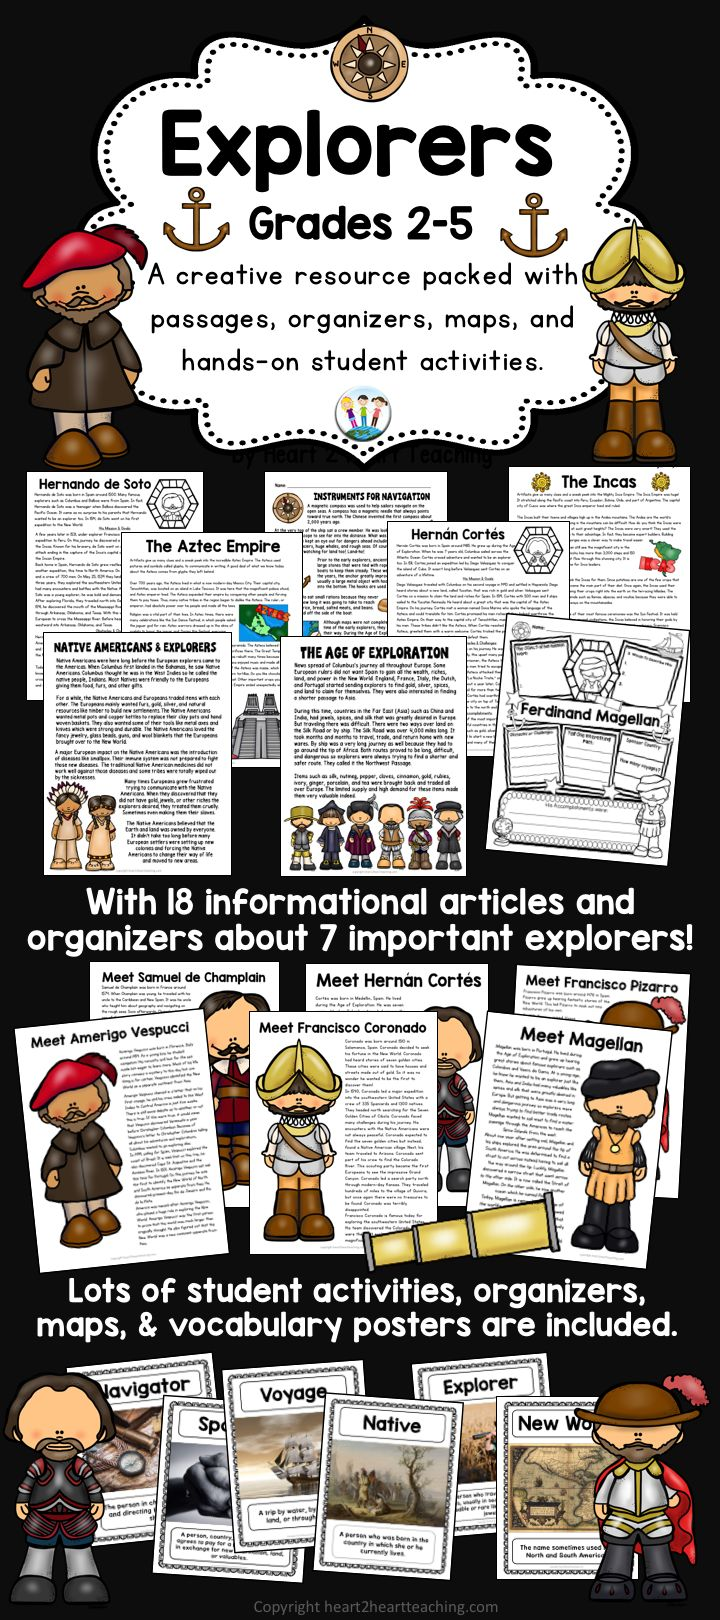 Learning about these 7 Early Explorers has never been so much fun! Take a look at this complete and creative hands-on activity pack that is sure to captivate your students. This unit includes information on the following explorers: *Ferdinand Magellan *Amerigo Vespucci *Samuel de Champlain *Hernan Cortes *Francisco Coronado *Francisco Pizarro *Hernando de Soto